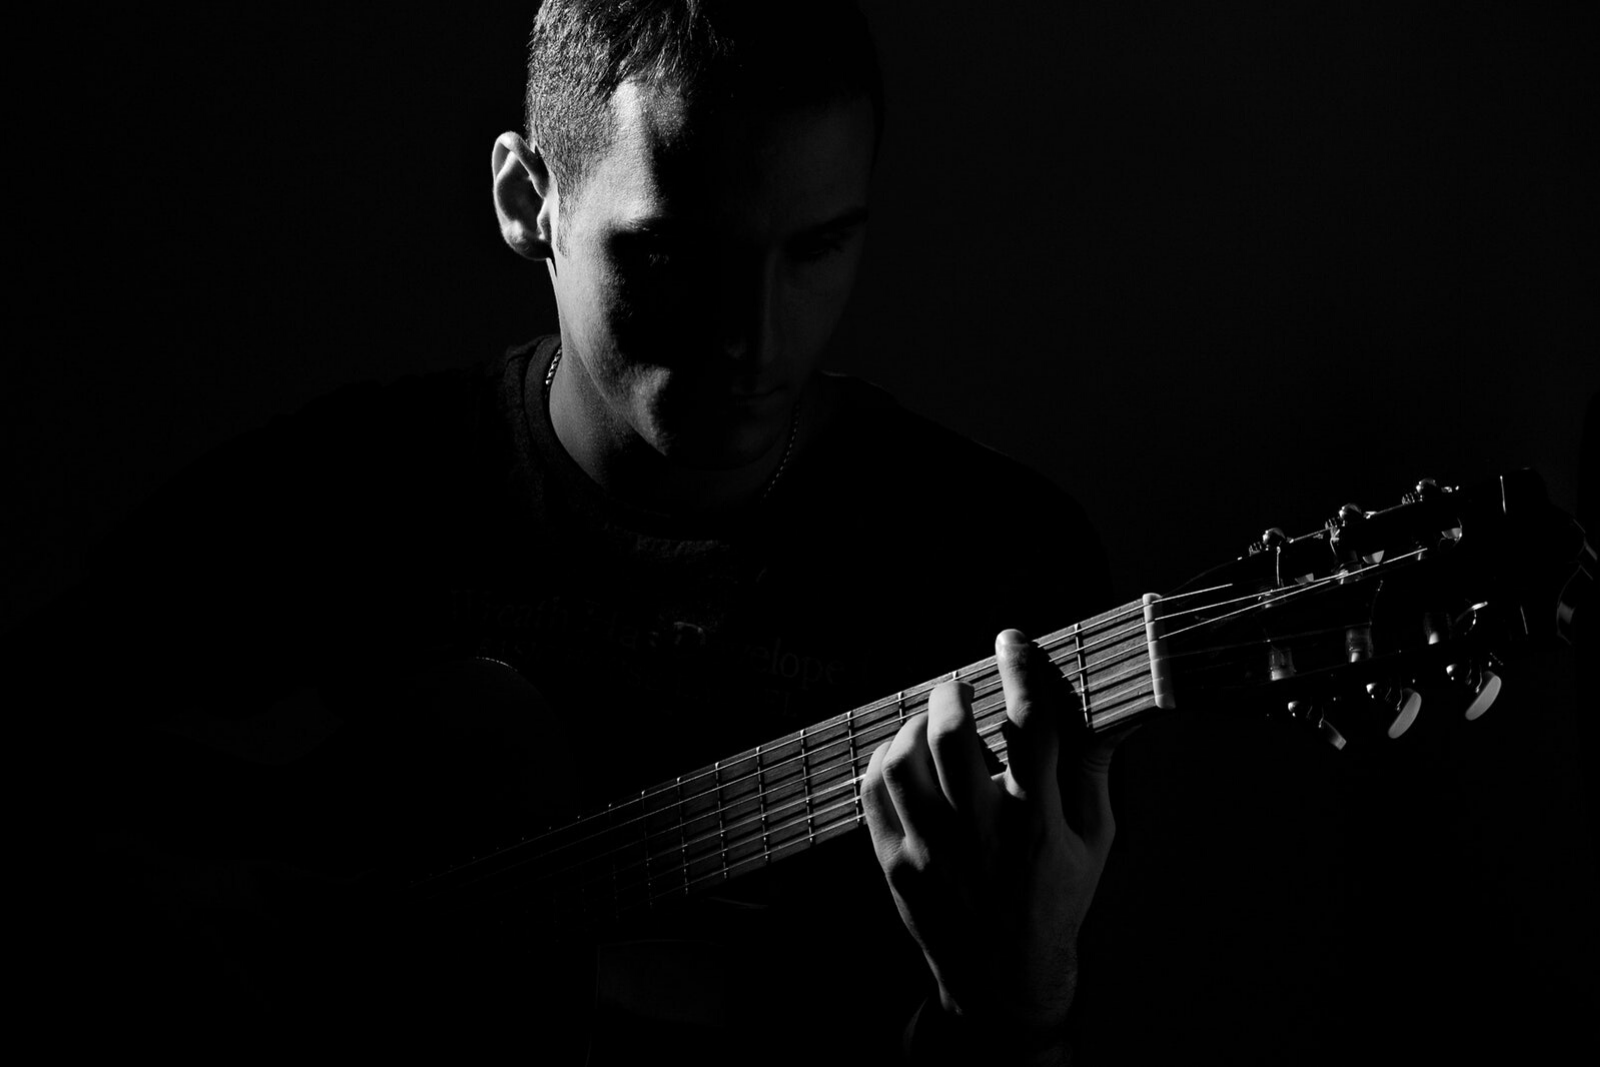 Man Playing Guitar | Learn Guitar With Apps: The 7 Best Ones To Use Today